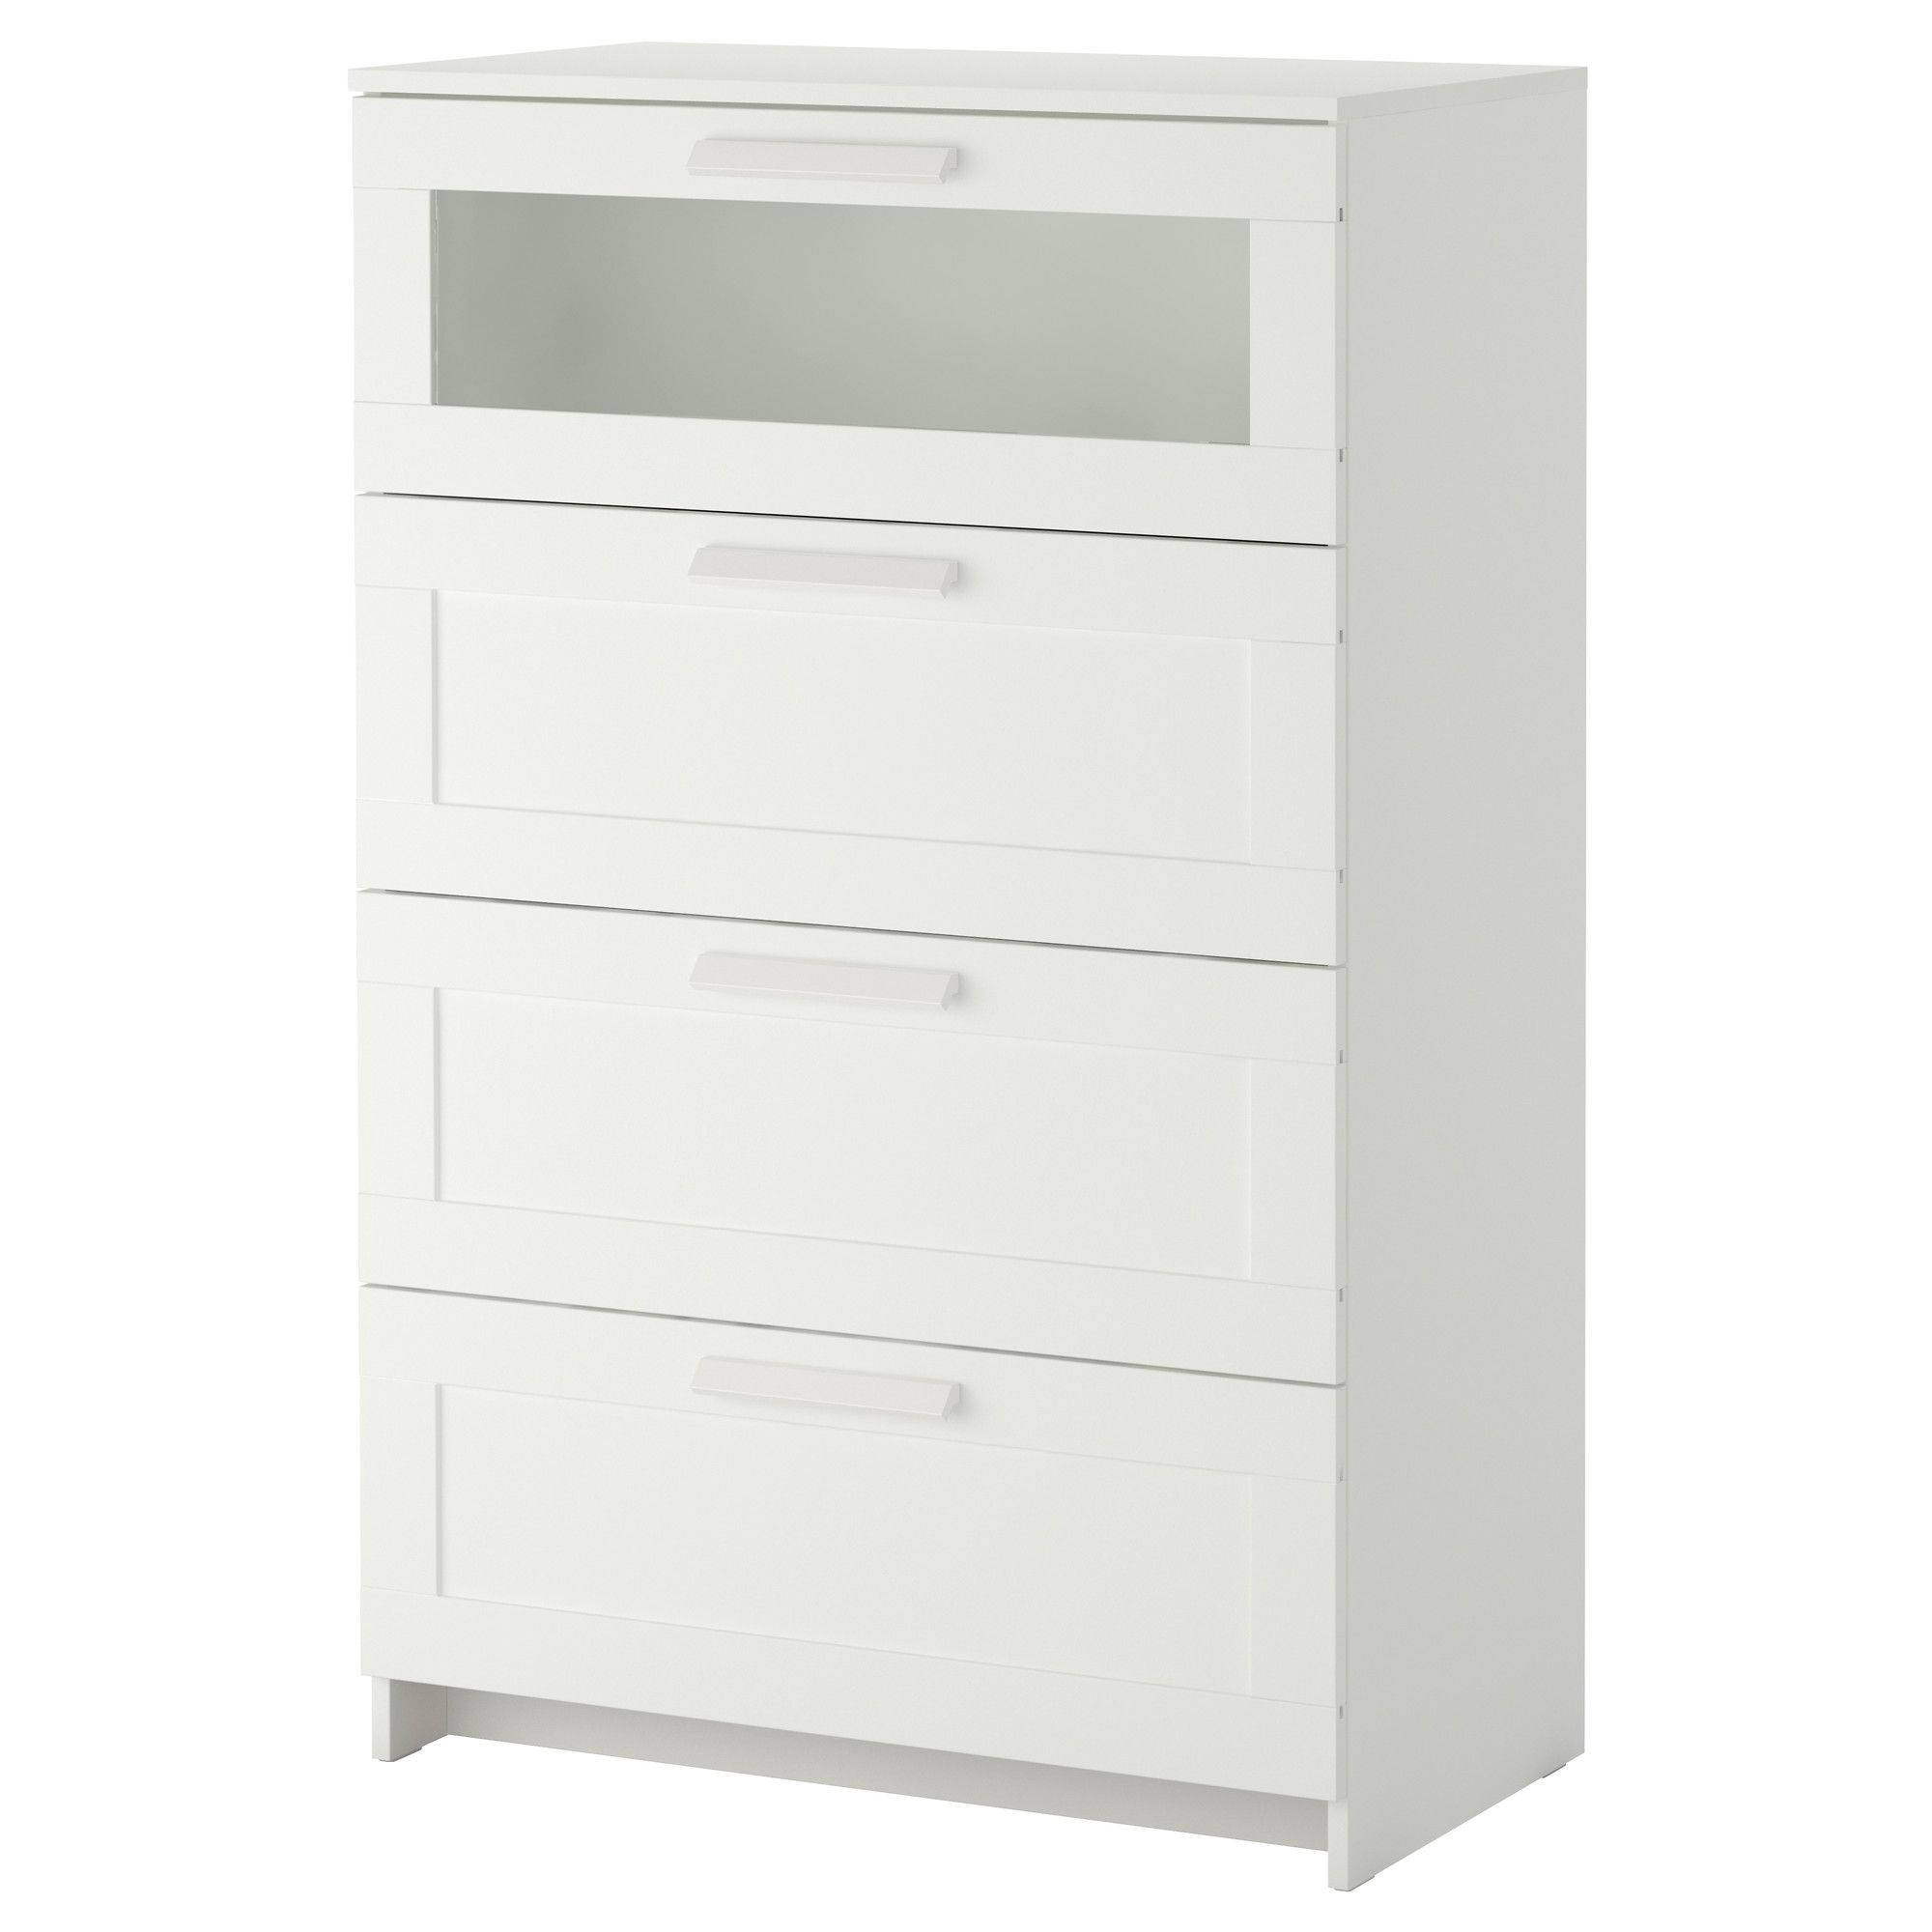 ikea brimnes commode 4 tiroirs blanc verre d poli les tiroirs sont faciles ouvrir et. Black Bedroom Furniture Sets. Home Design Ideas